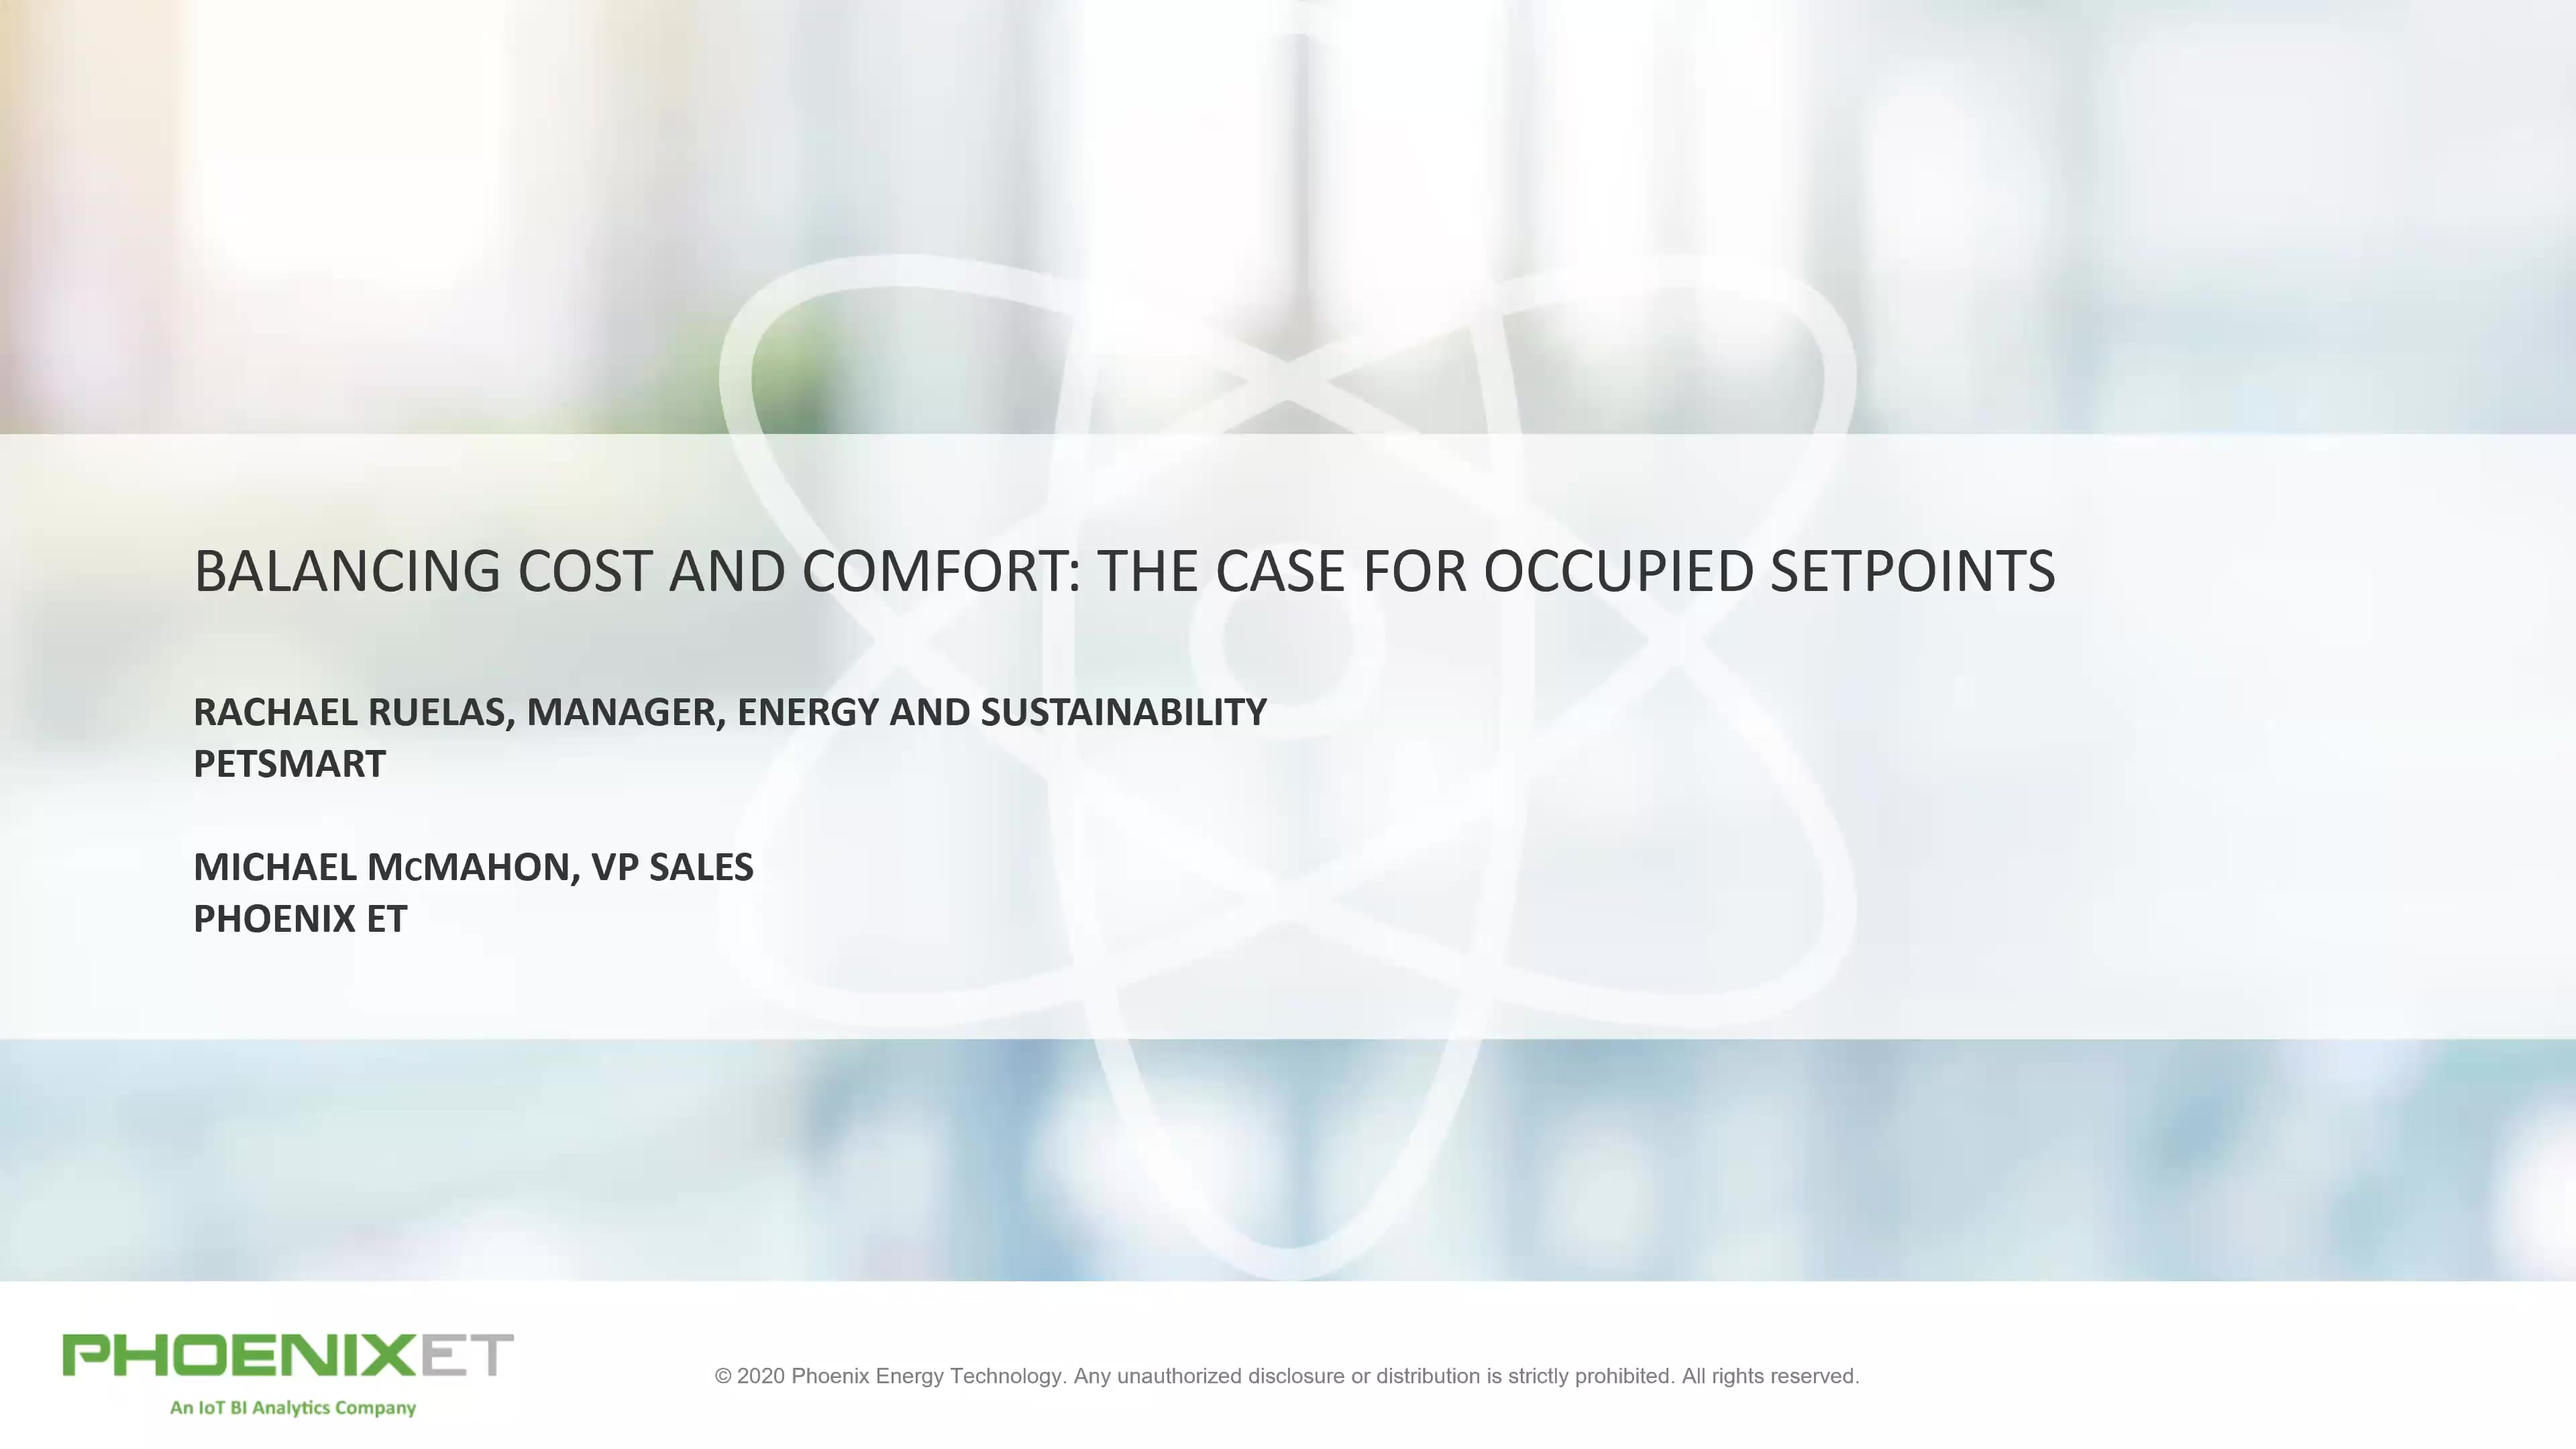 Balancing Cost and Comfort - A Major Retailers Case for Always Occupied Setpoints